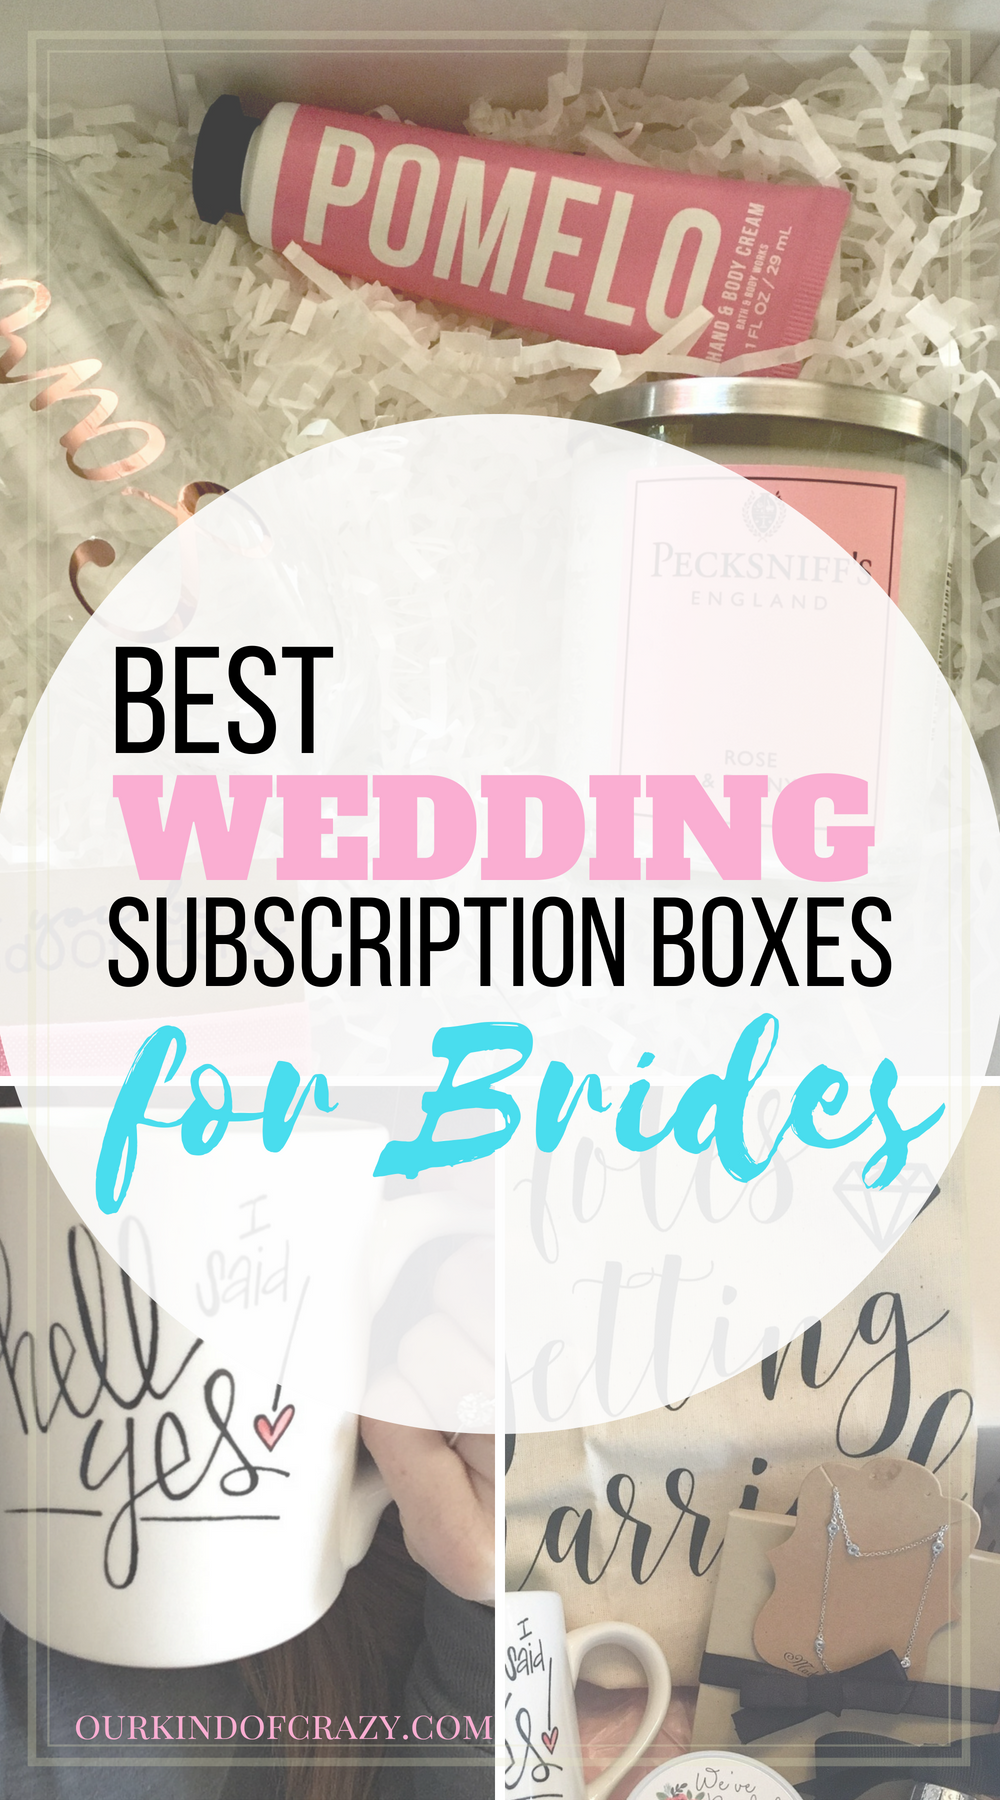 Bridal Subscription Boxes. Here are some of the best bridal subscription box reviews for the new bride to be. #brideboxes #weddingboxes